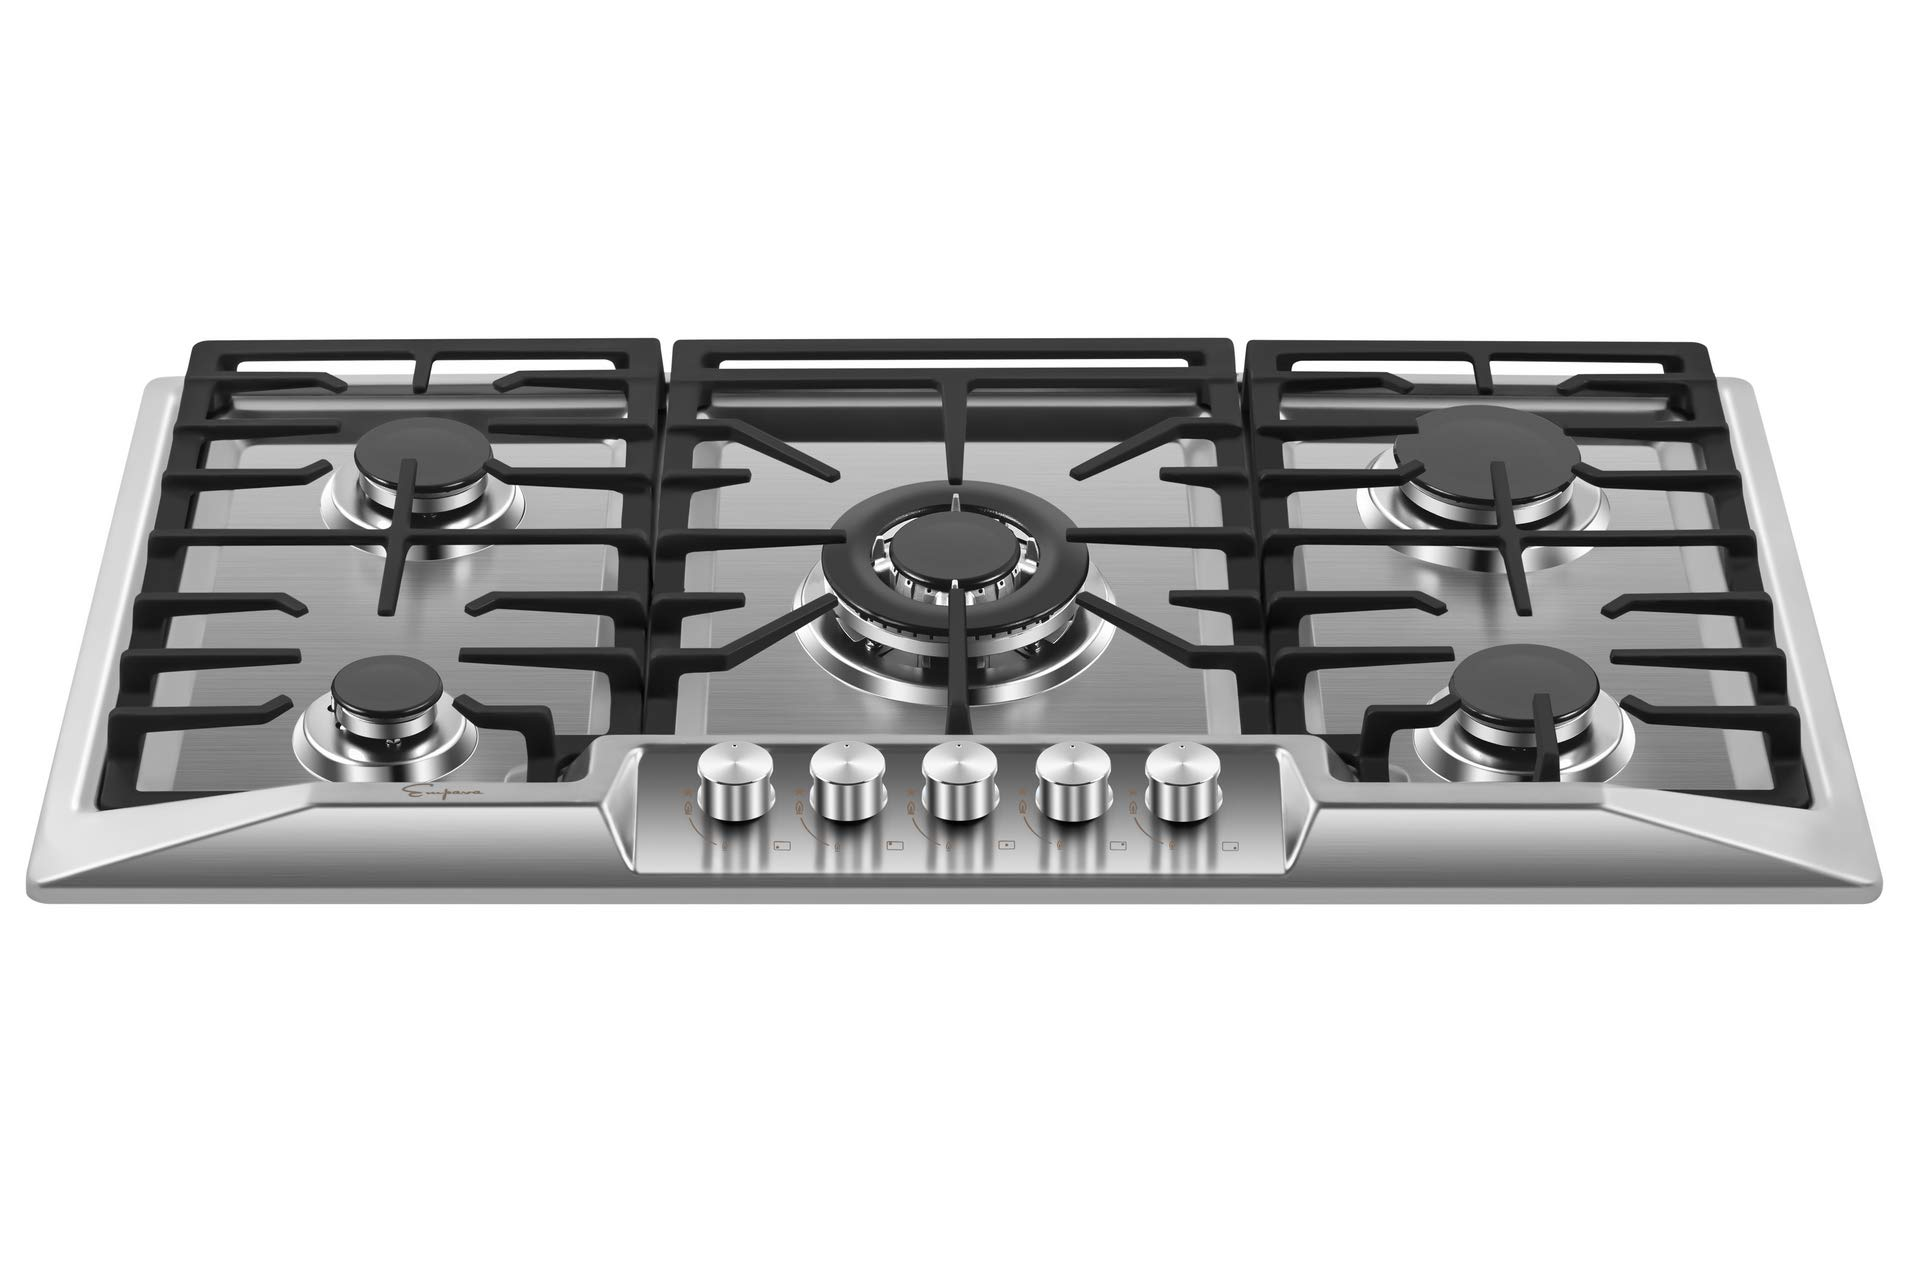 Empava 36 Inch Gas Stove Cooktop with 5 Italy Sabaf Sealed Burners NG//LPG Convertible in Stainless Steel